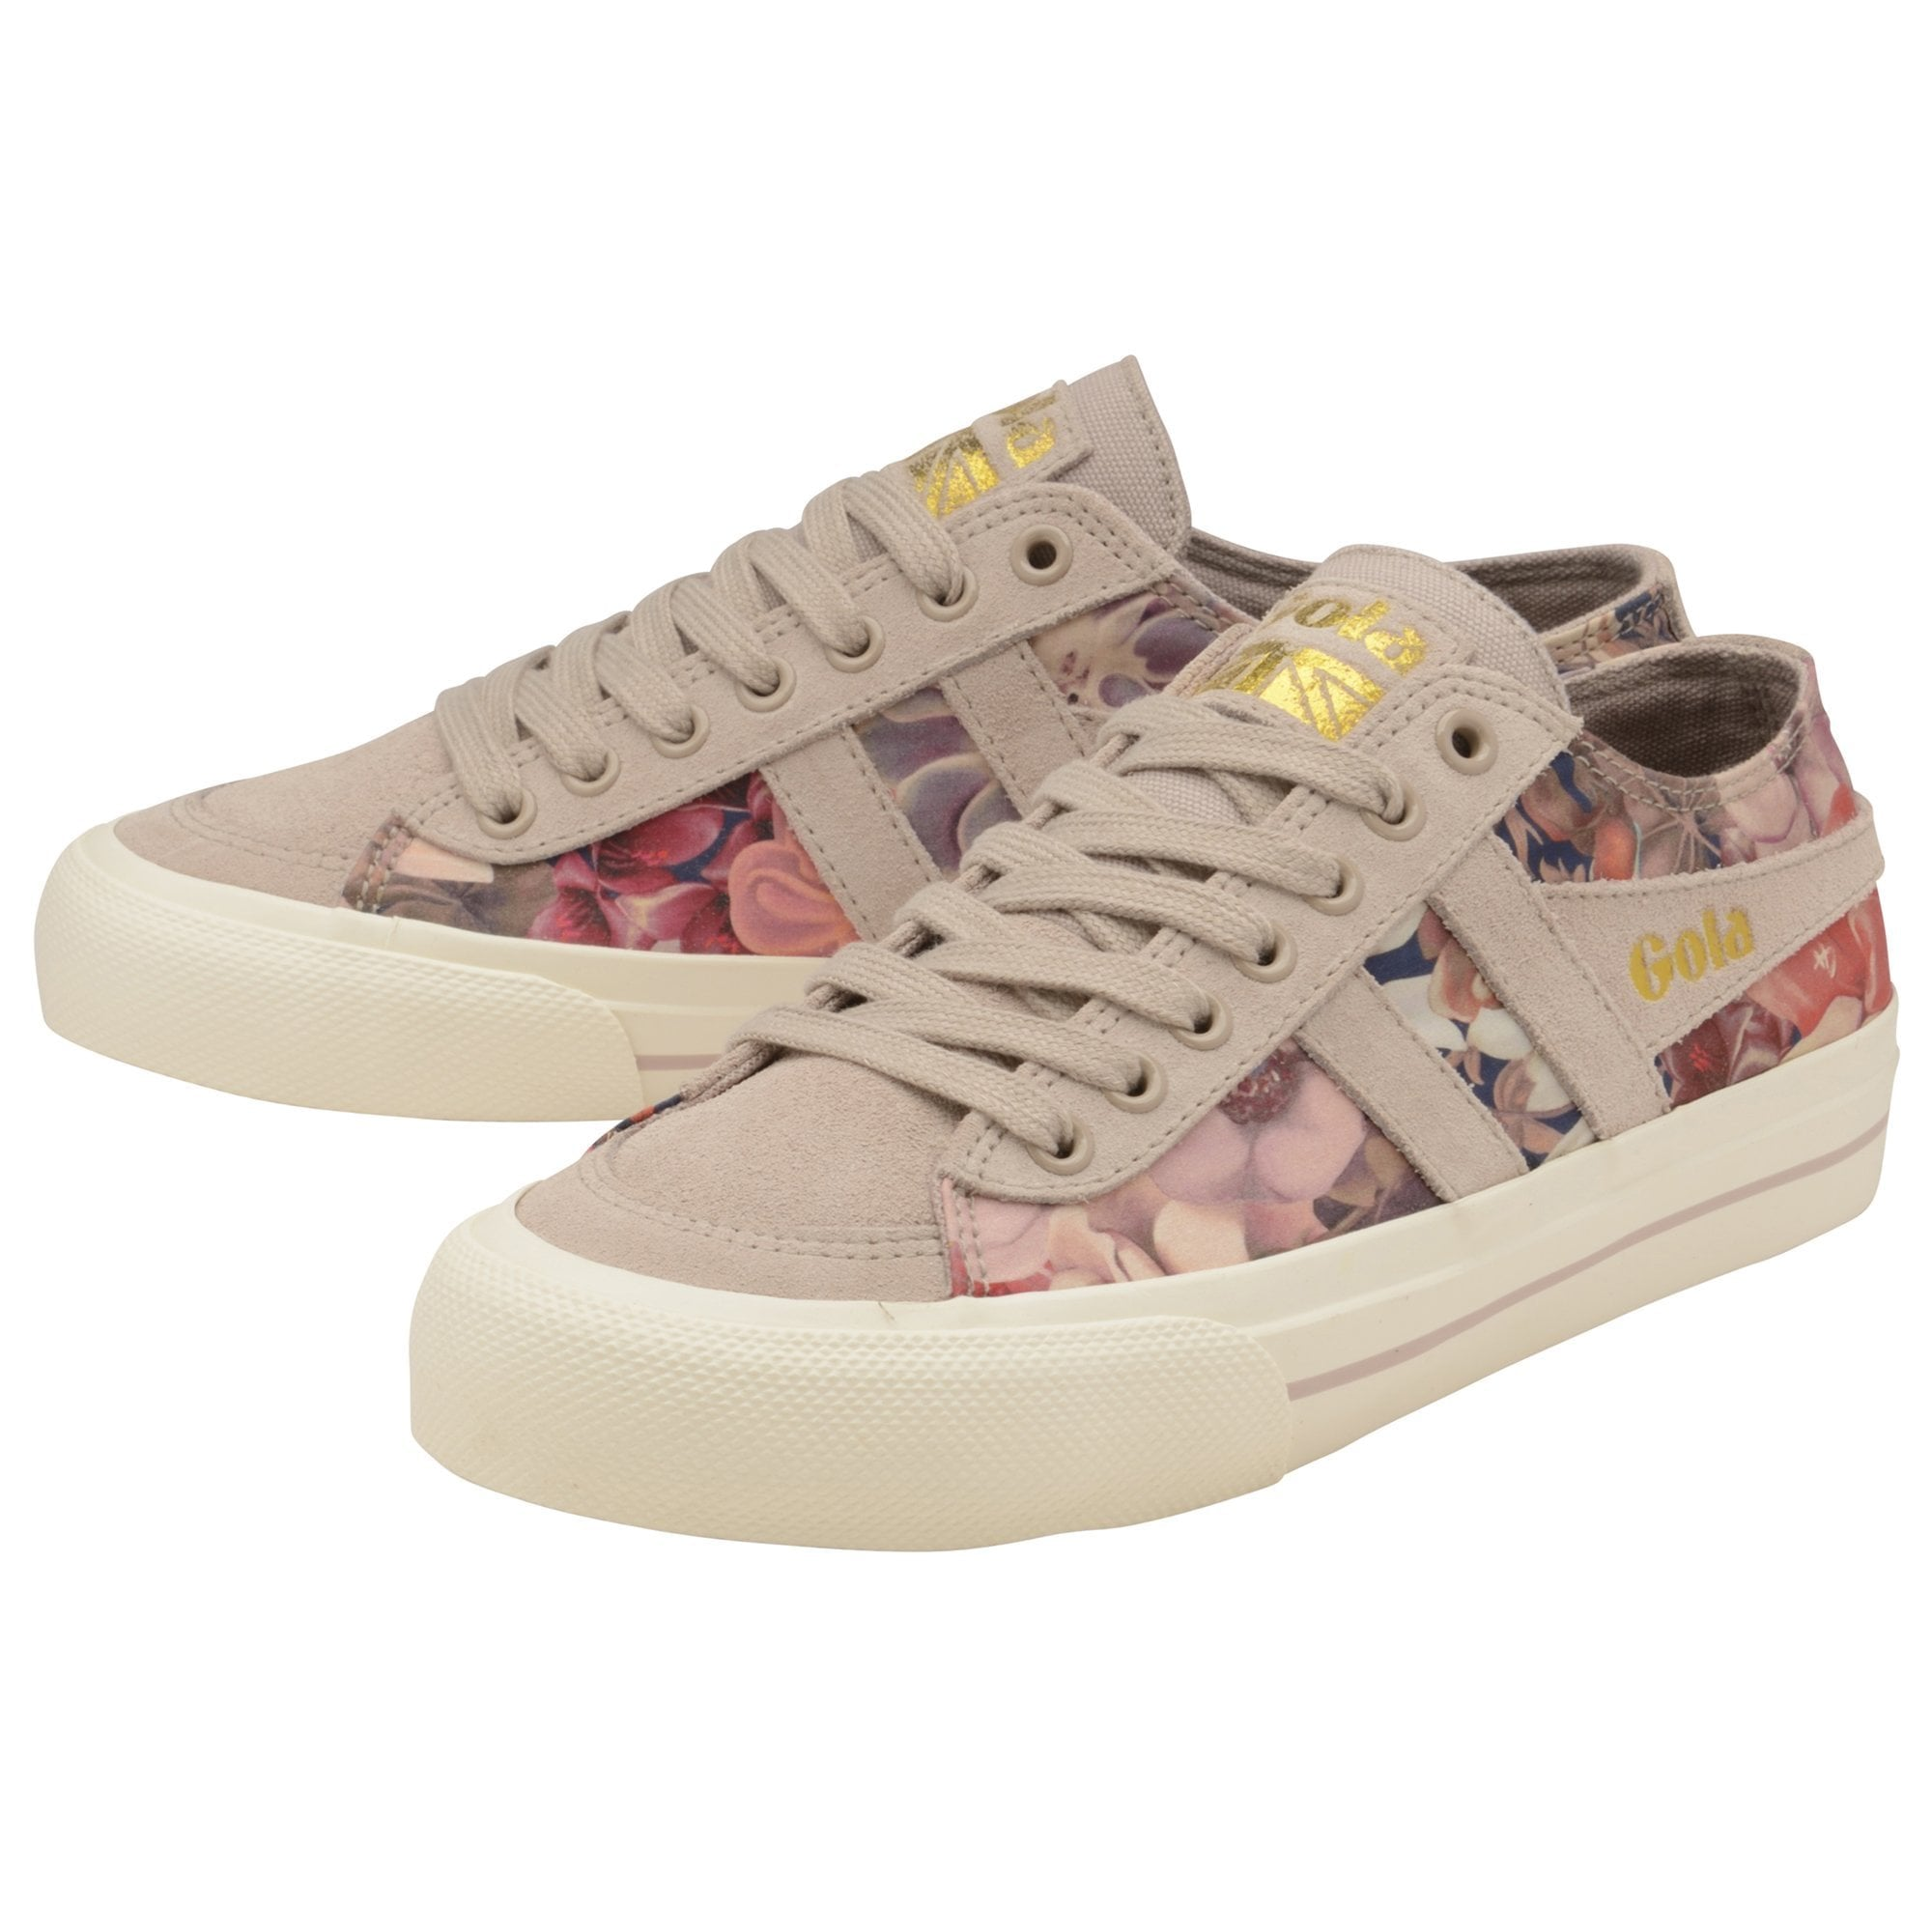 Women's Quota II Liberty PJ Sneakers